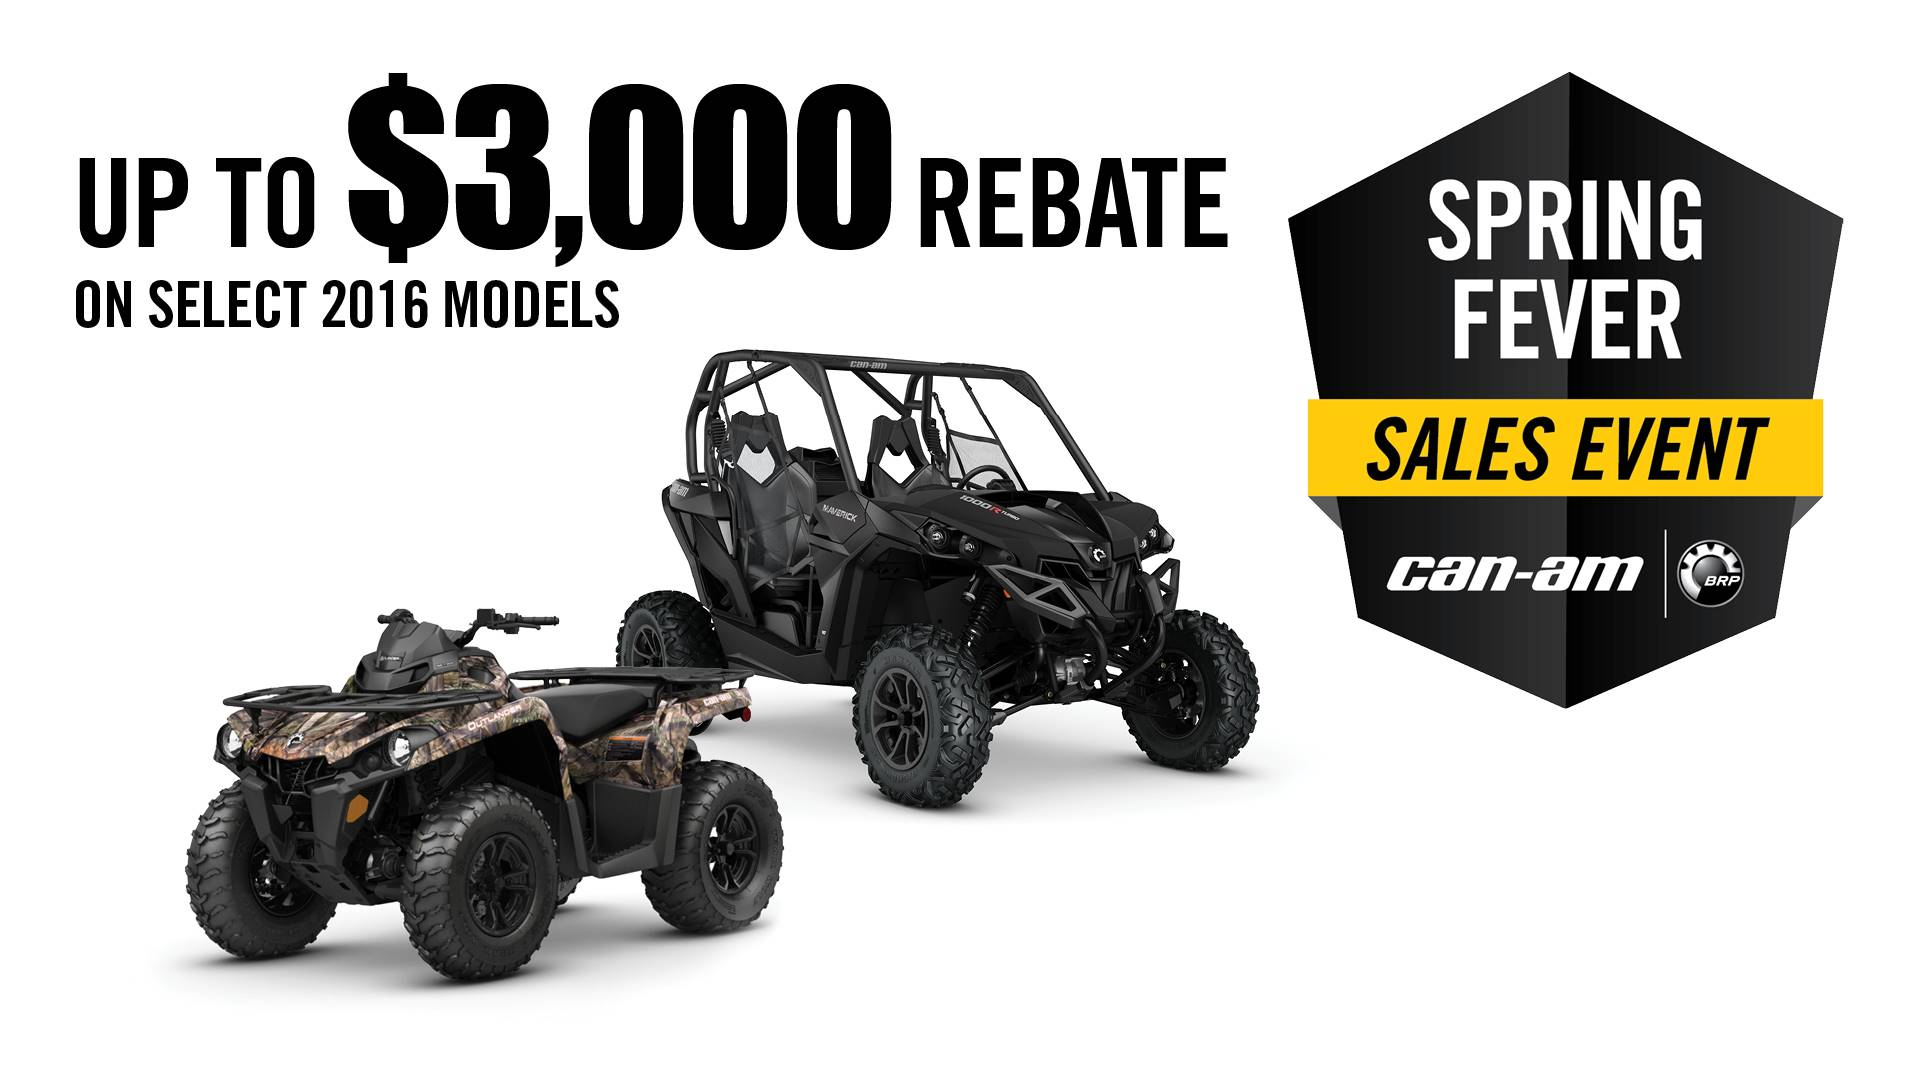 Can-Am Spring Fever Sales Event ATV Offer